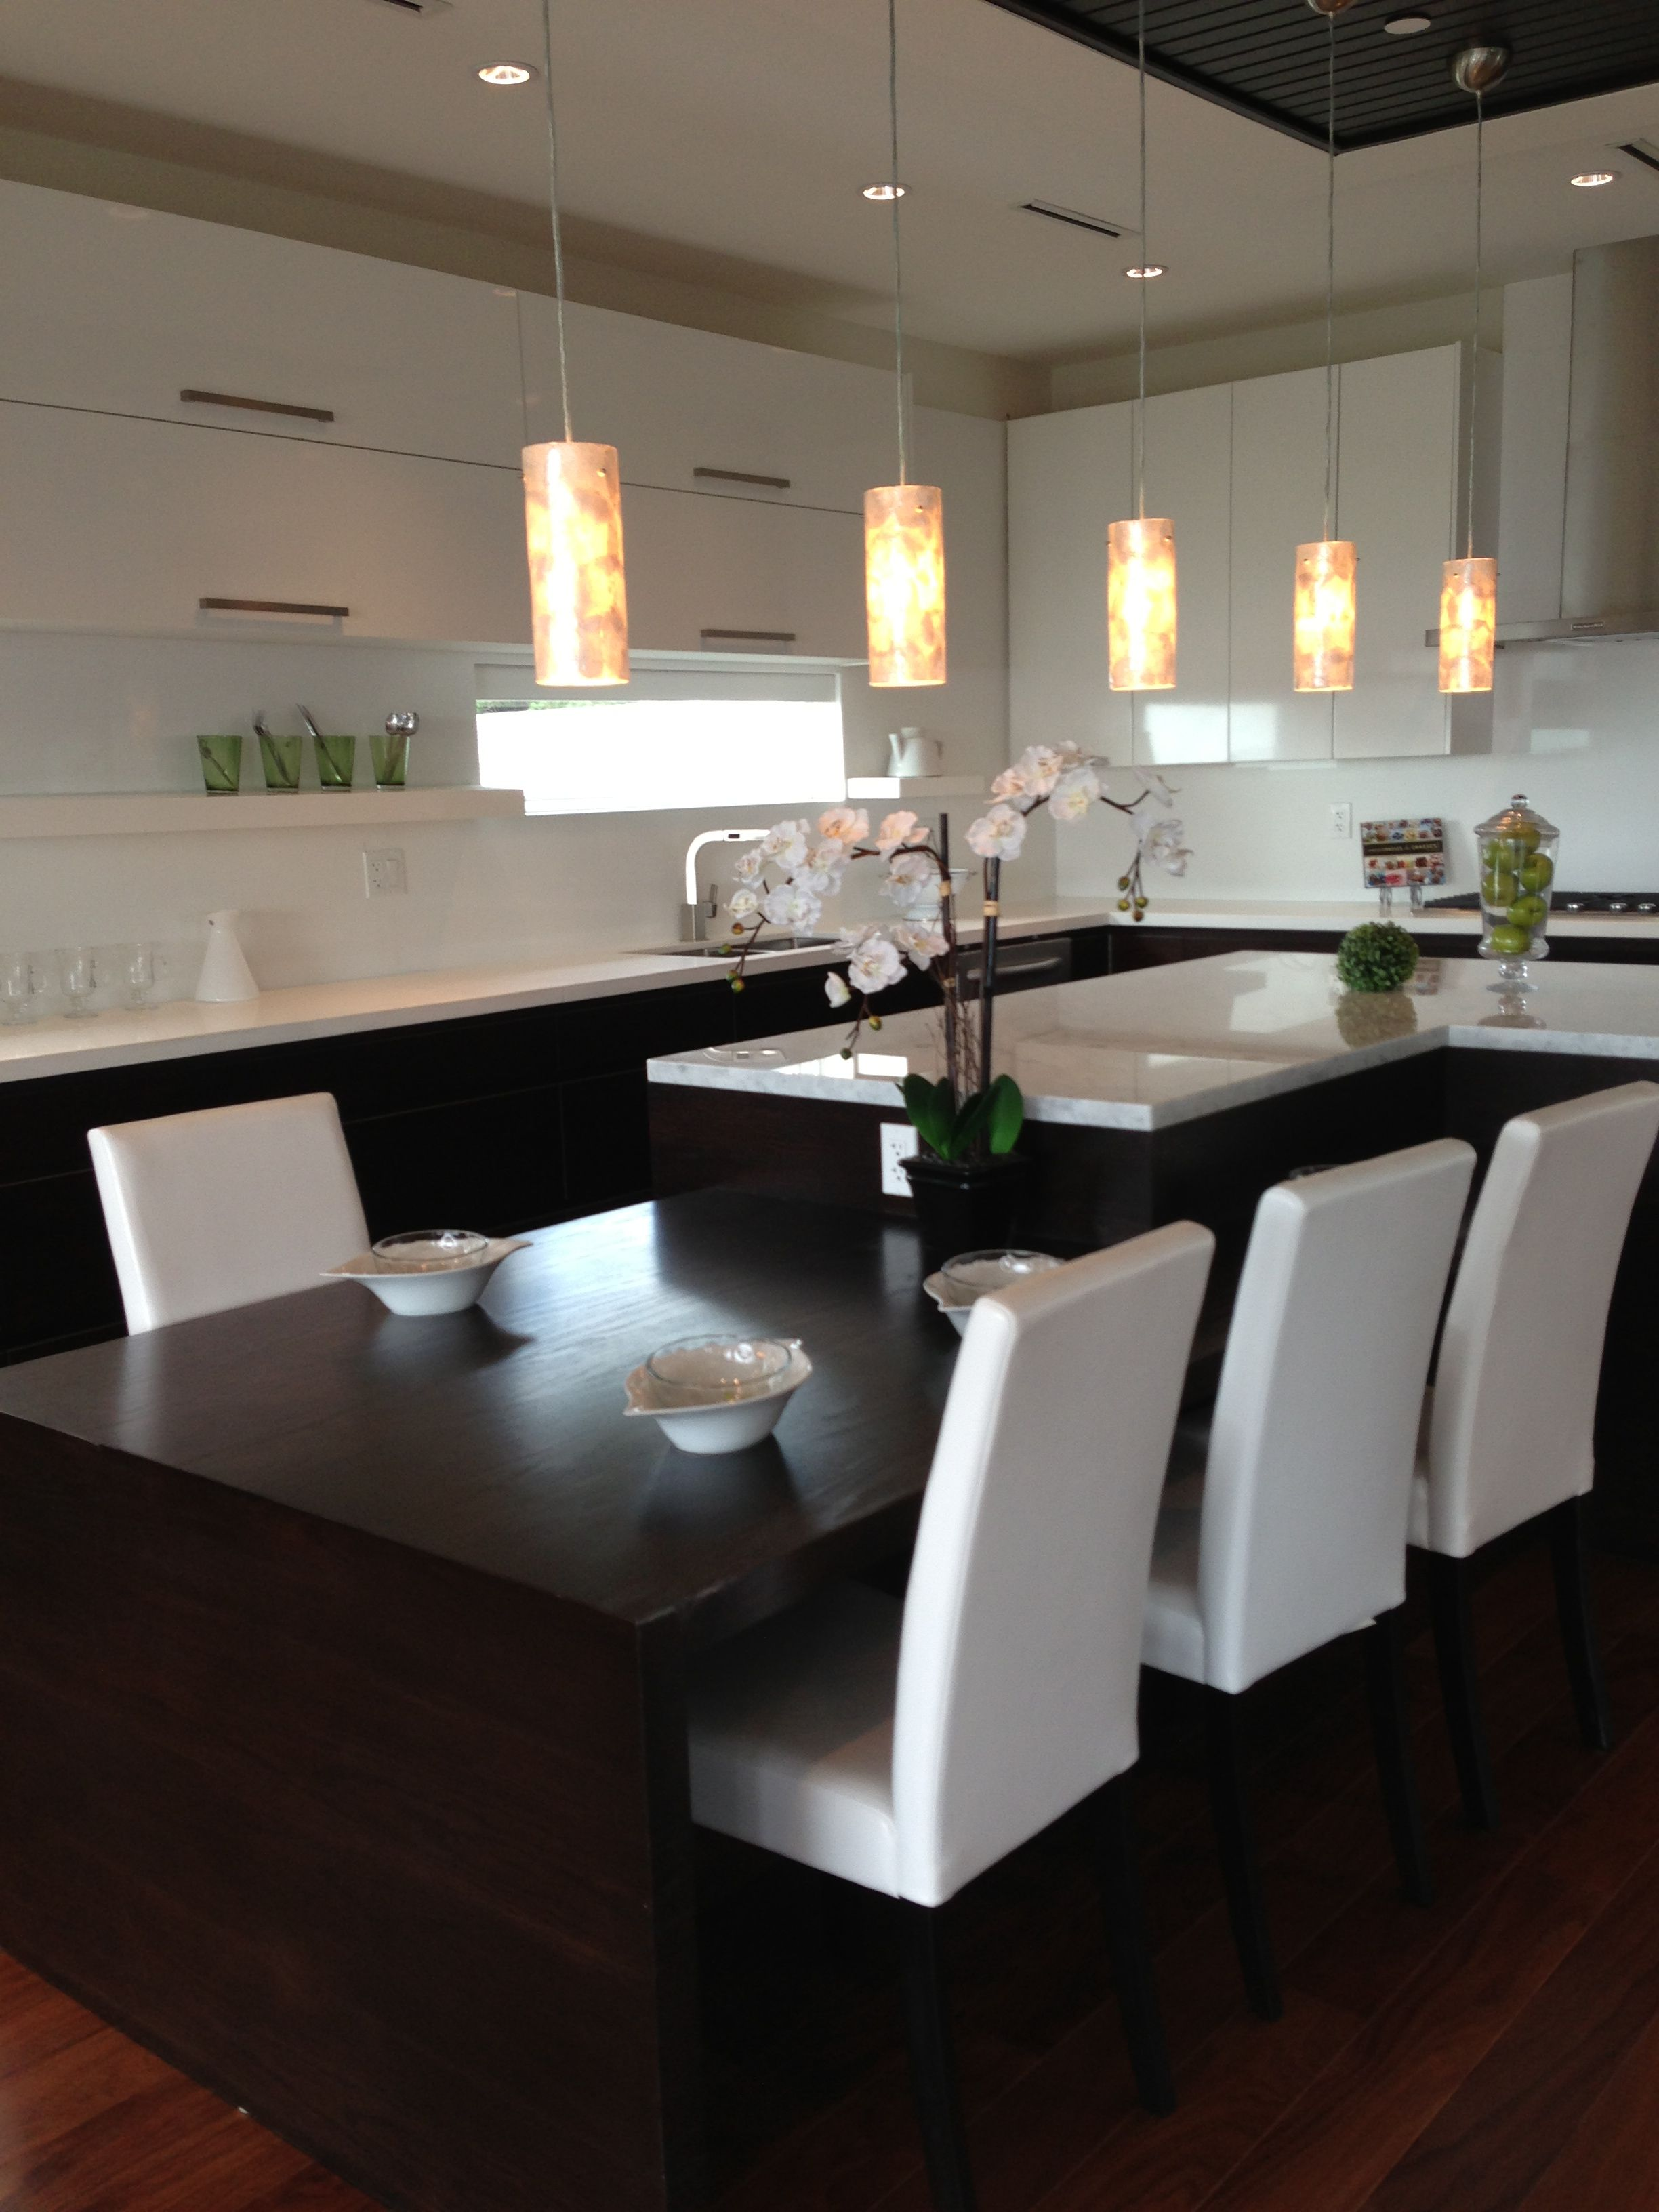 Pin By Heather Haveman On My Dream Home Ideas Kitchen Island Dining Table Kitchen Island Table Kitchen Island Table Combination